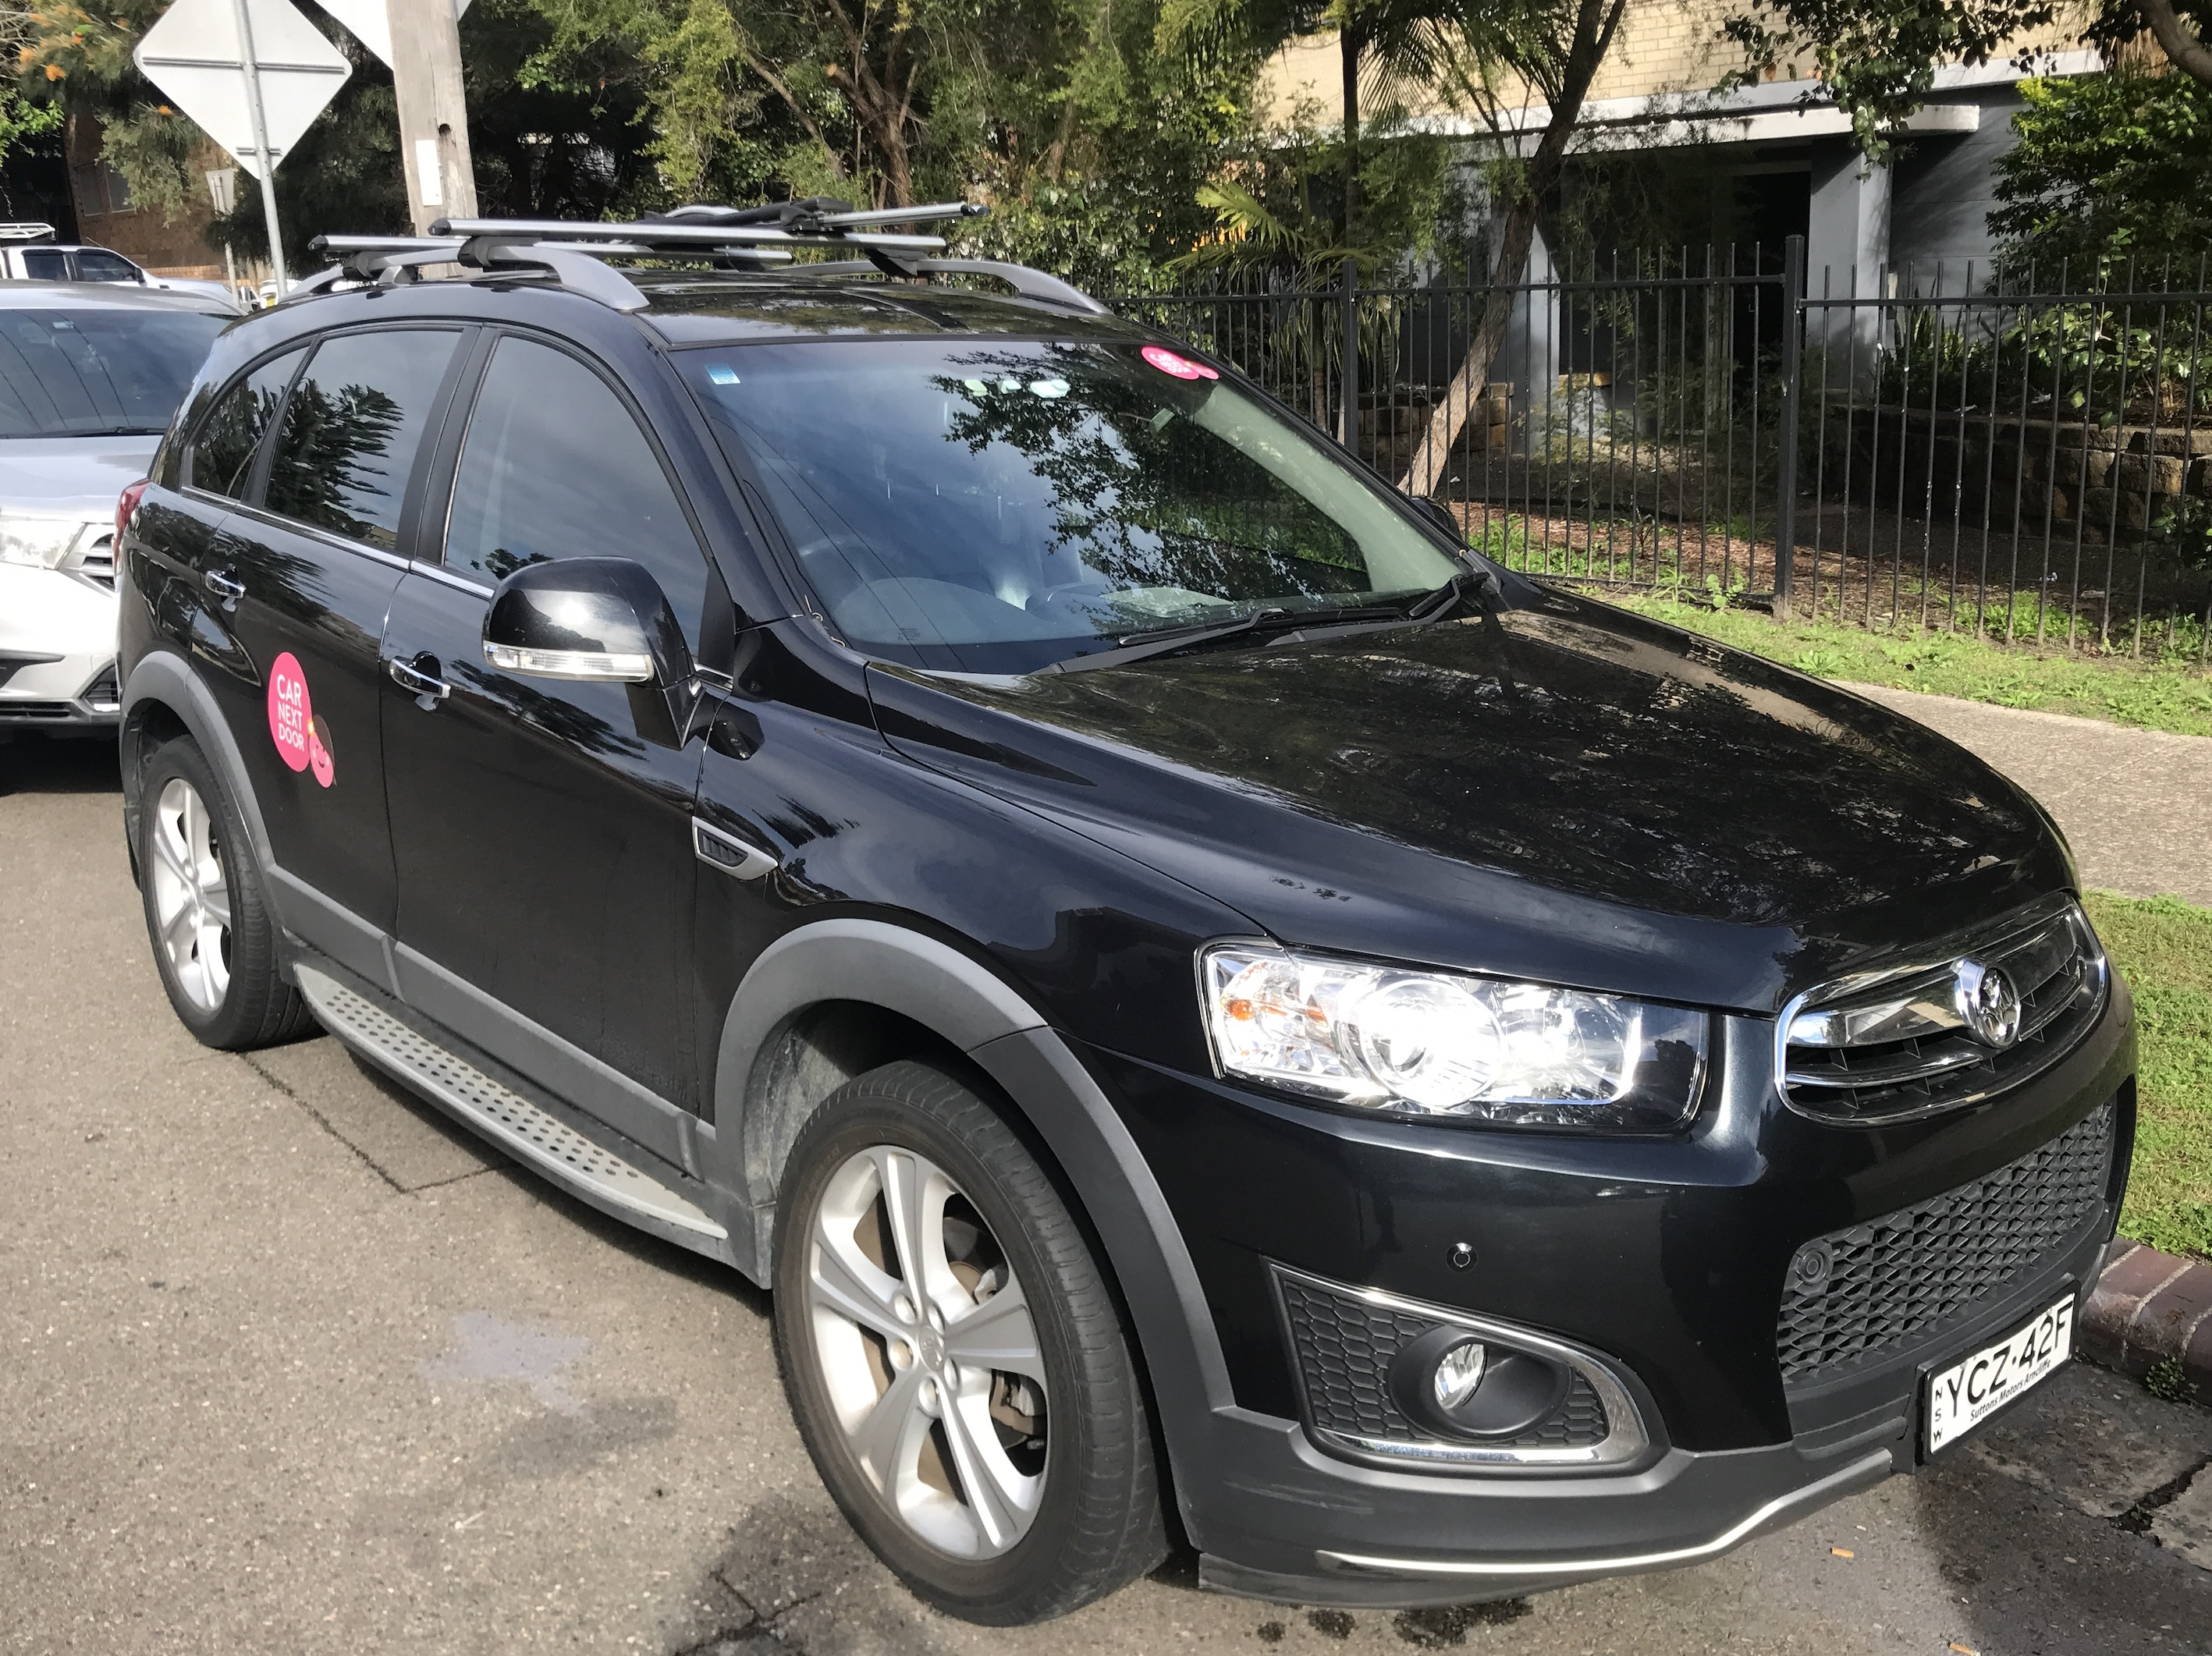 Picture of Bee Hui's 2014 Holden Captiva 7